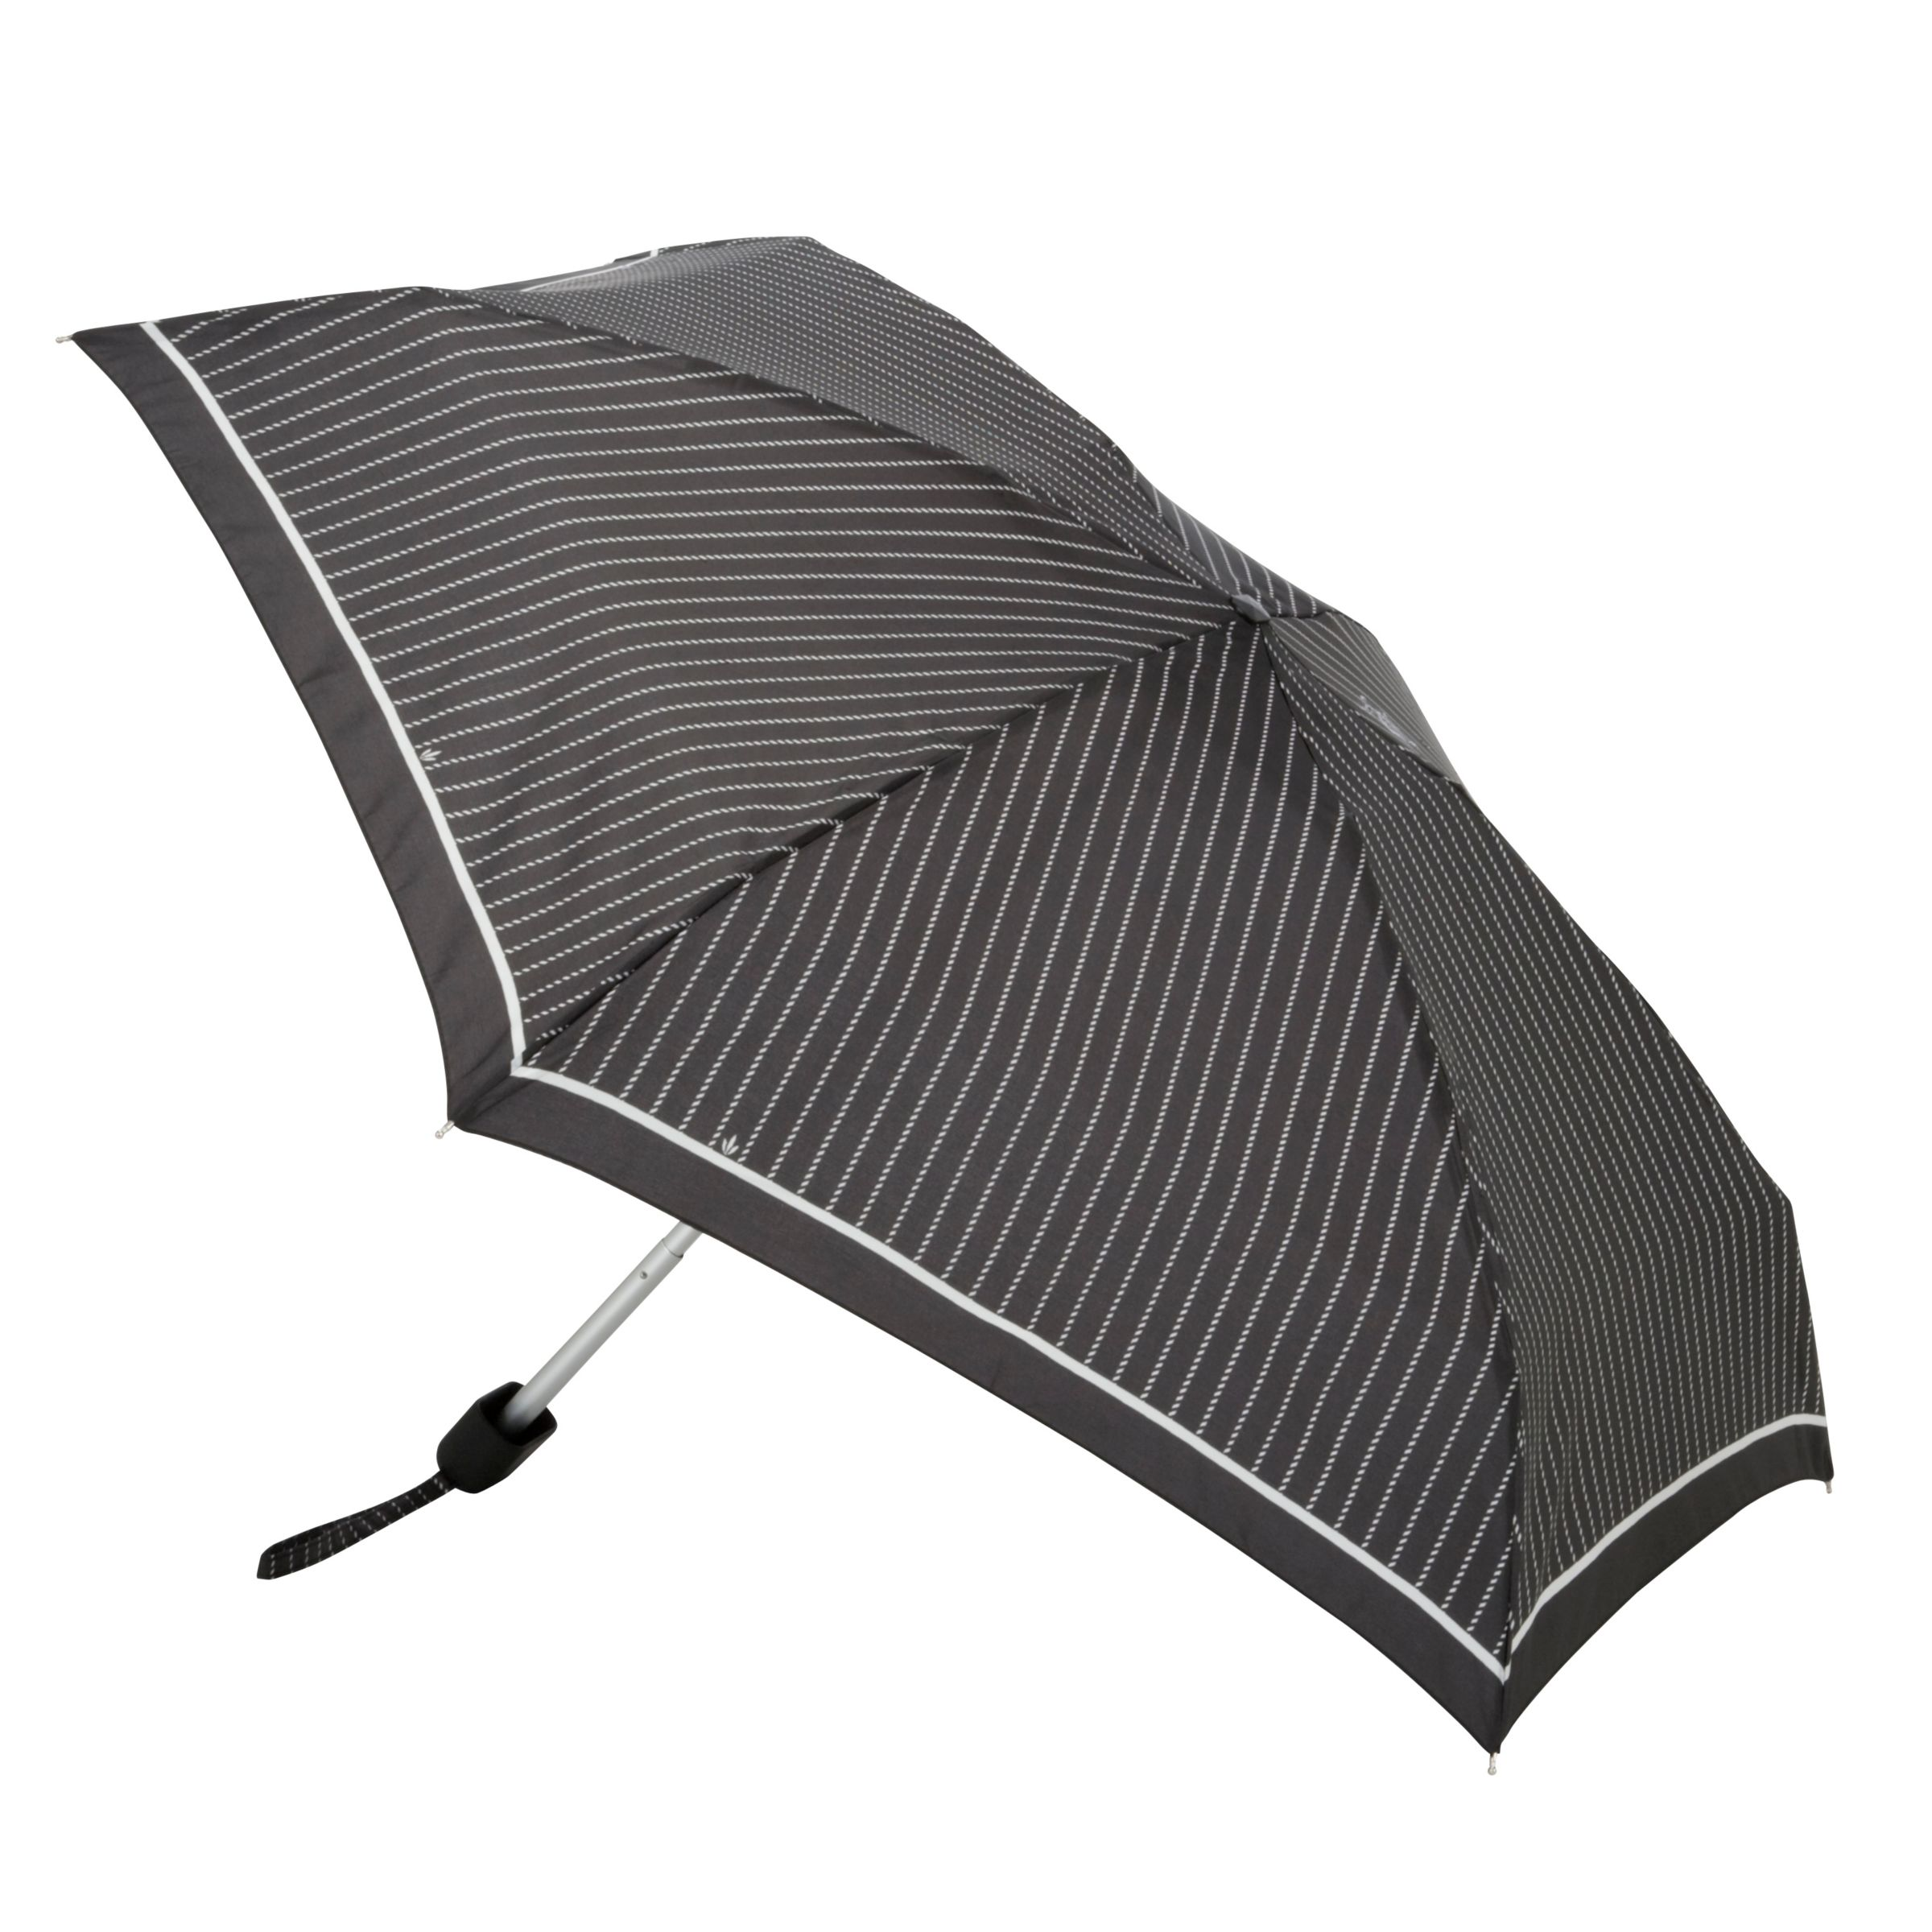 Fulton Fulton Tiny-2 Classics Compact Folding Umbrella, Black/White